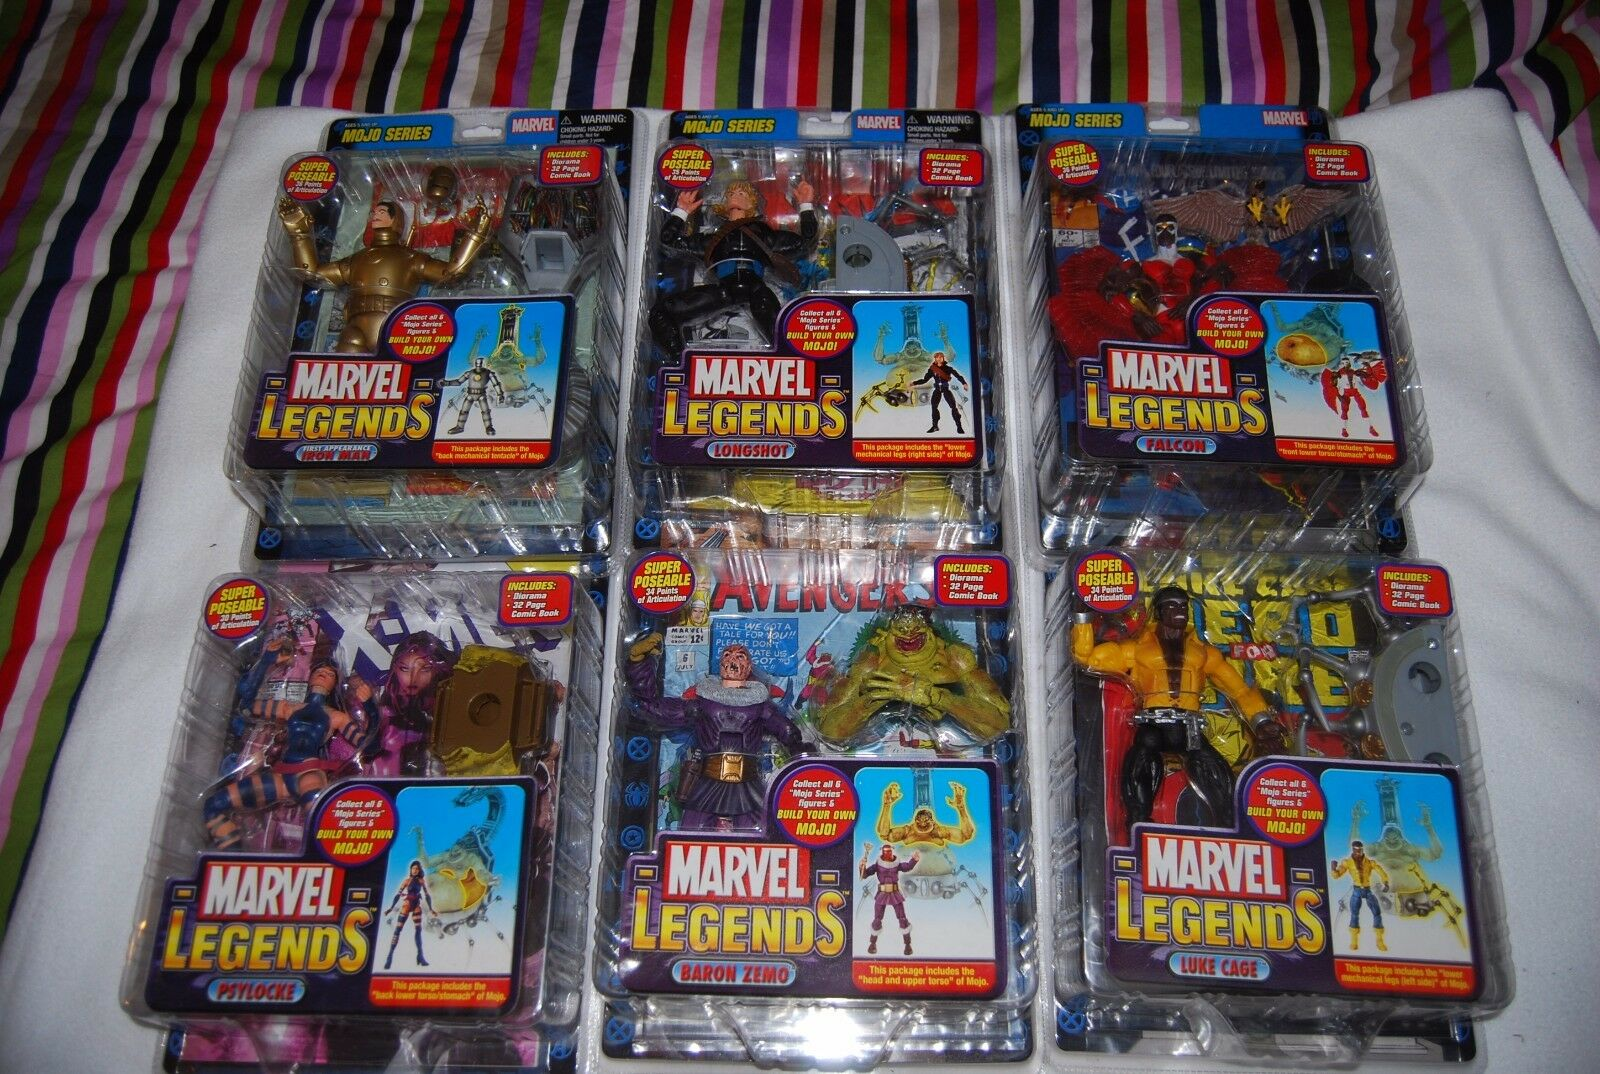 Marvel Legends Build A cifra BAF MOJO Series 2006 Set of 6 Sealed nuovo VARIAENTI